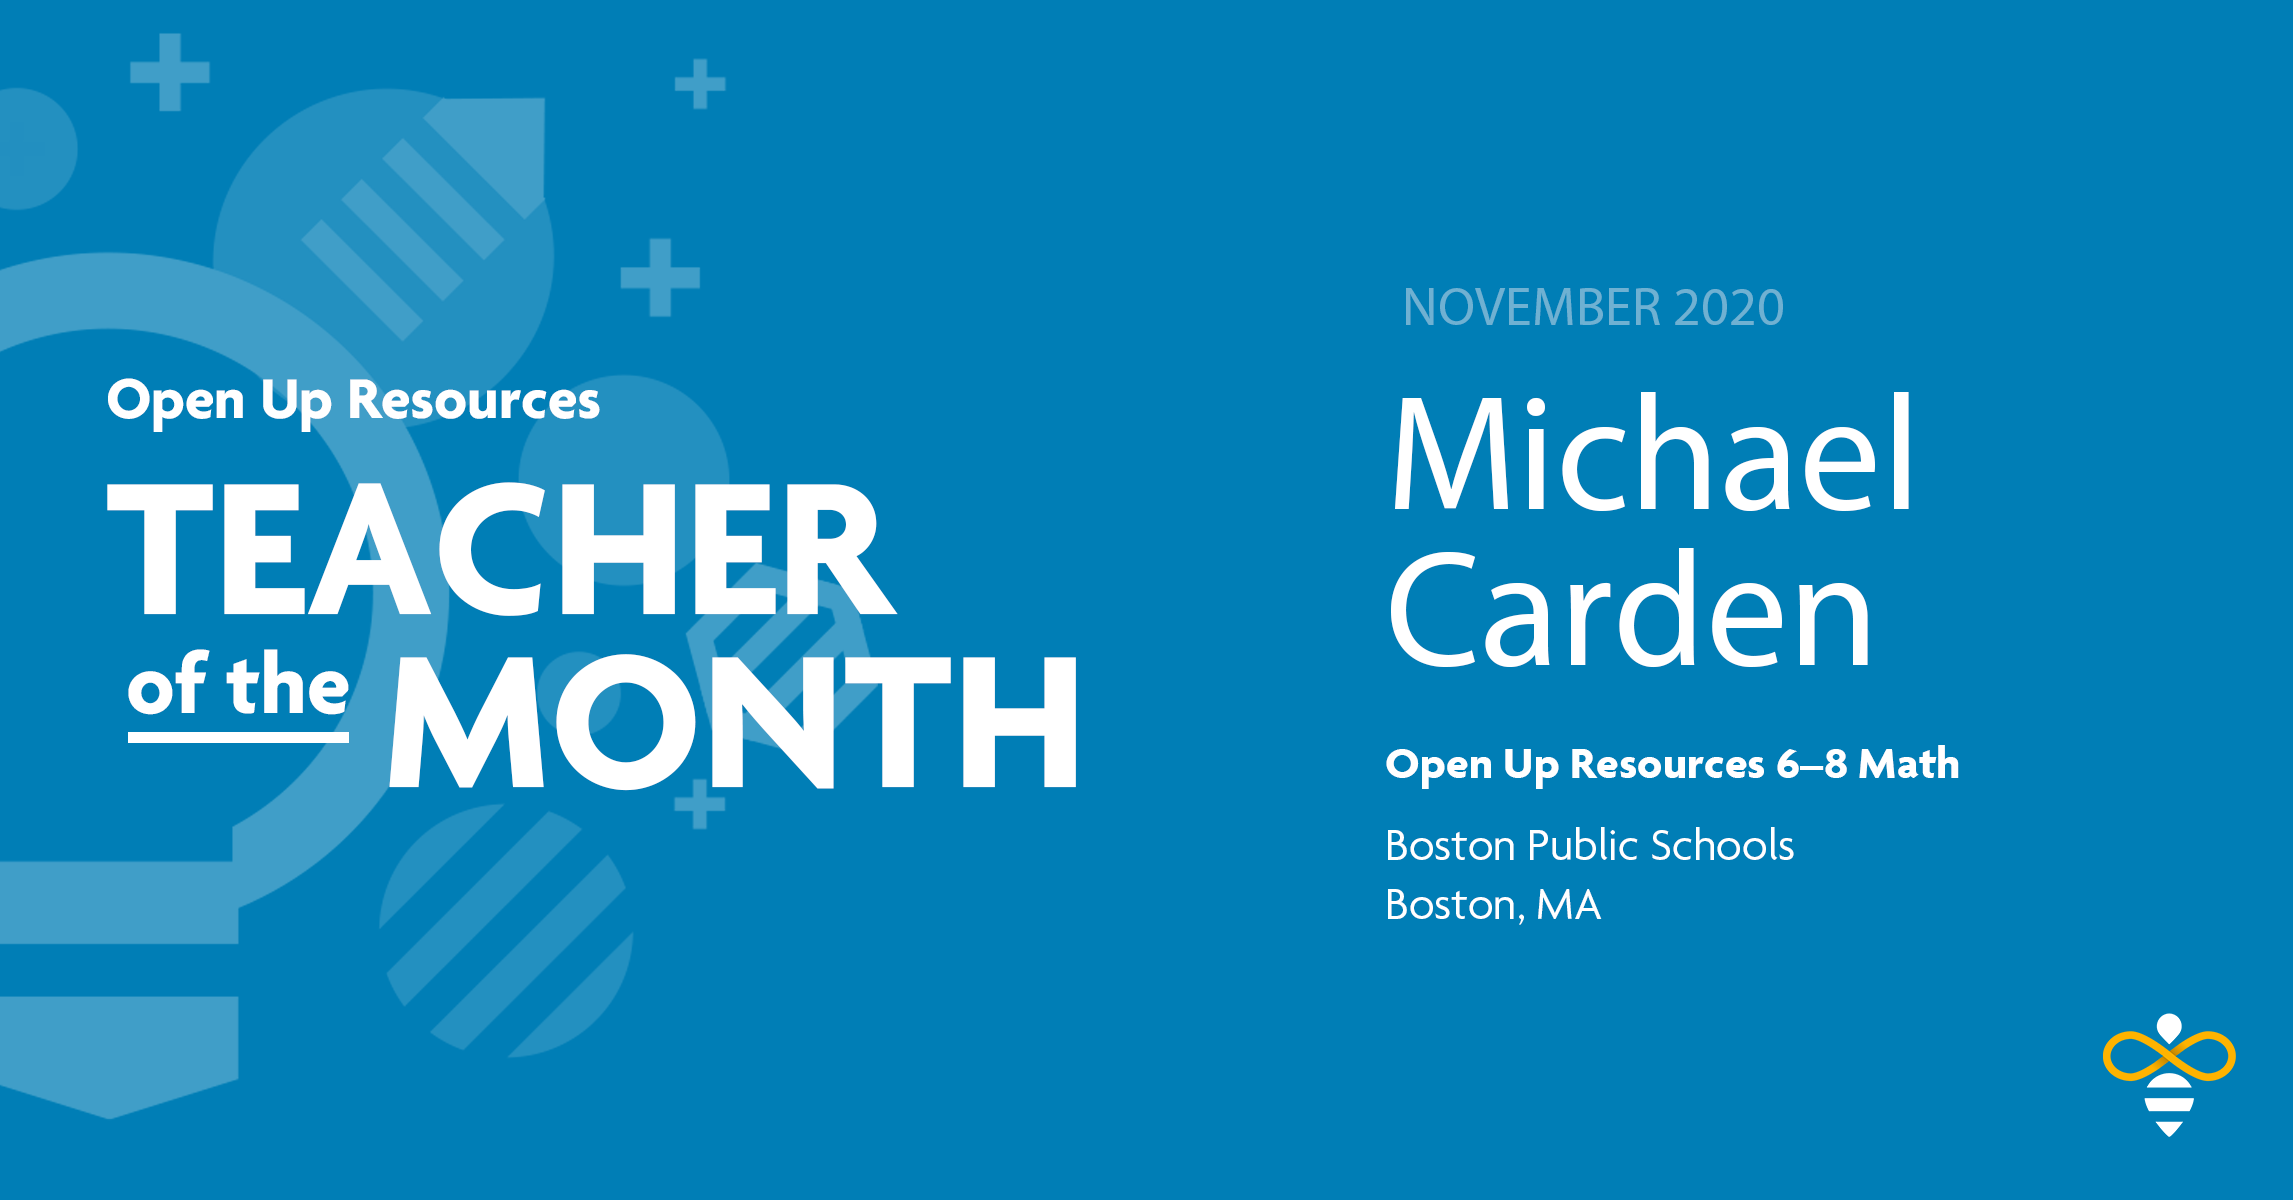 teacher-of-the-month-6-8-math-michael-carden